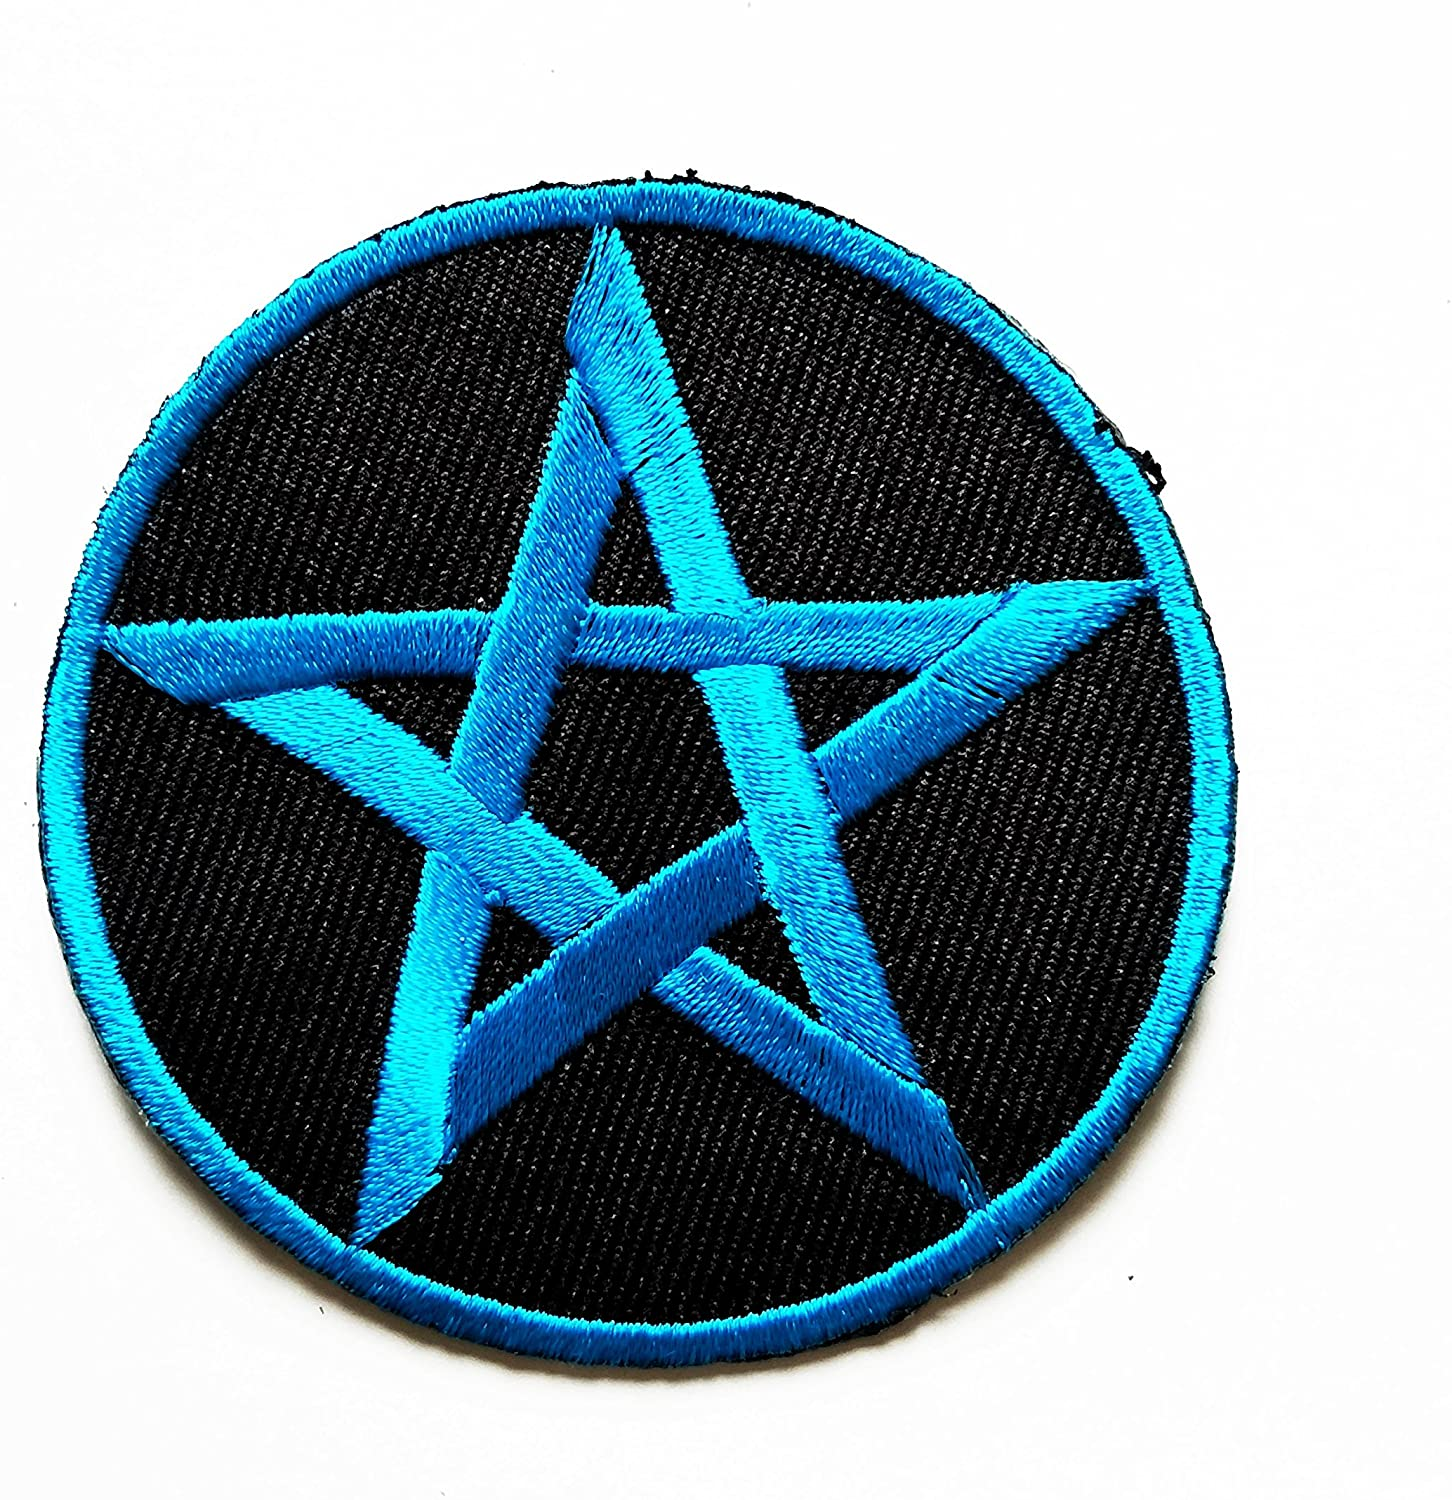 HHO Blue Star Ninja Star Embroidered Patch Embroidered DIY Patches, Cute Applique Sew Iron on Kids Craft Patch for Bags Jackets Jeans Clothes